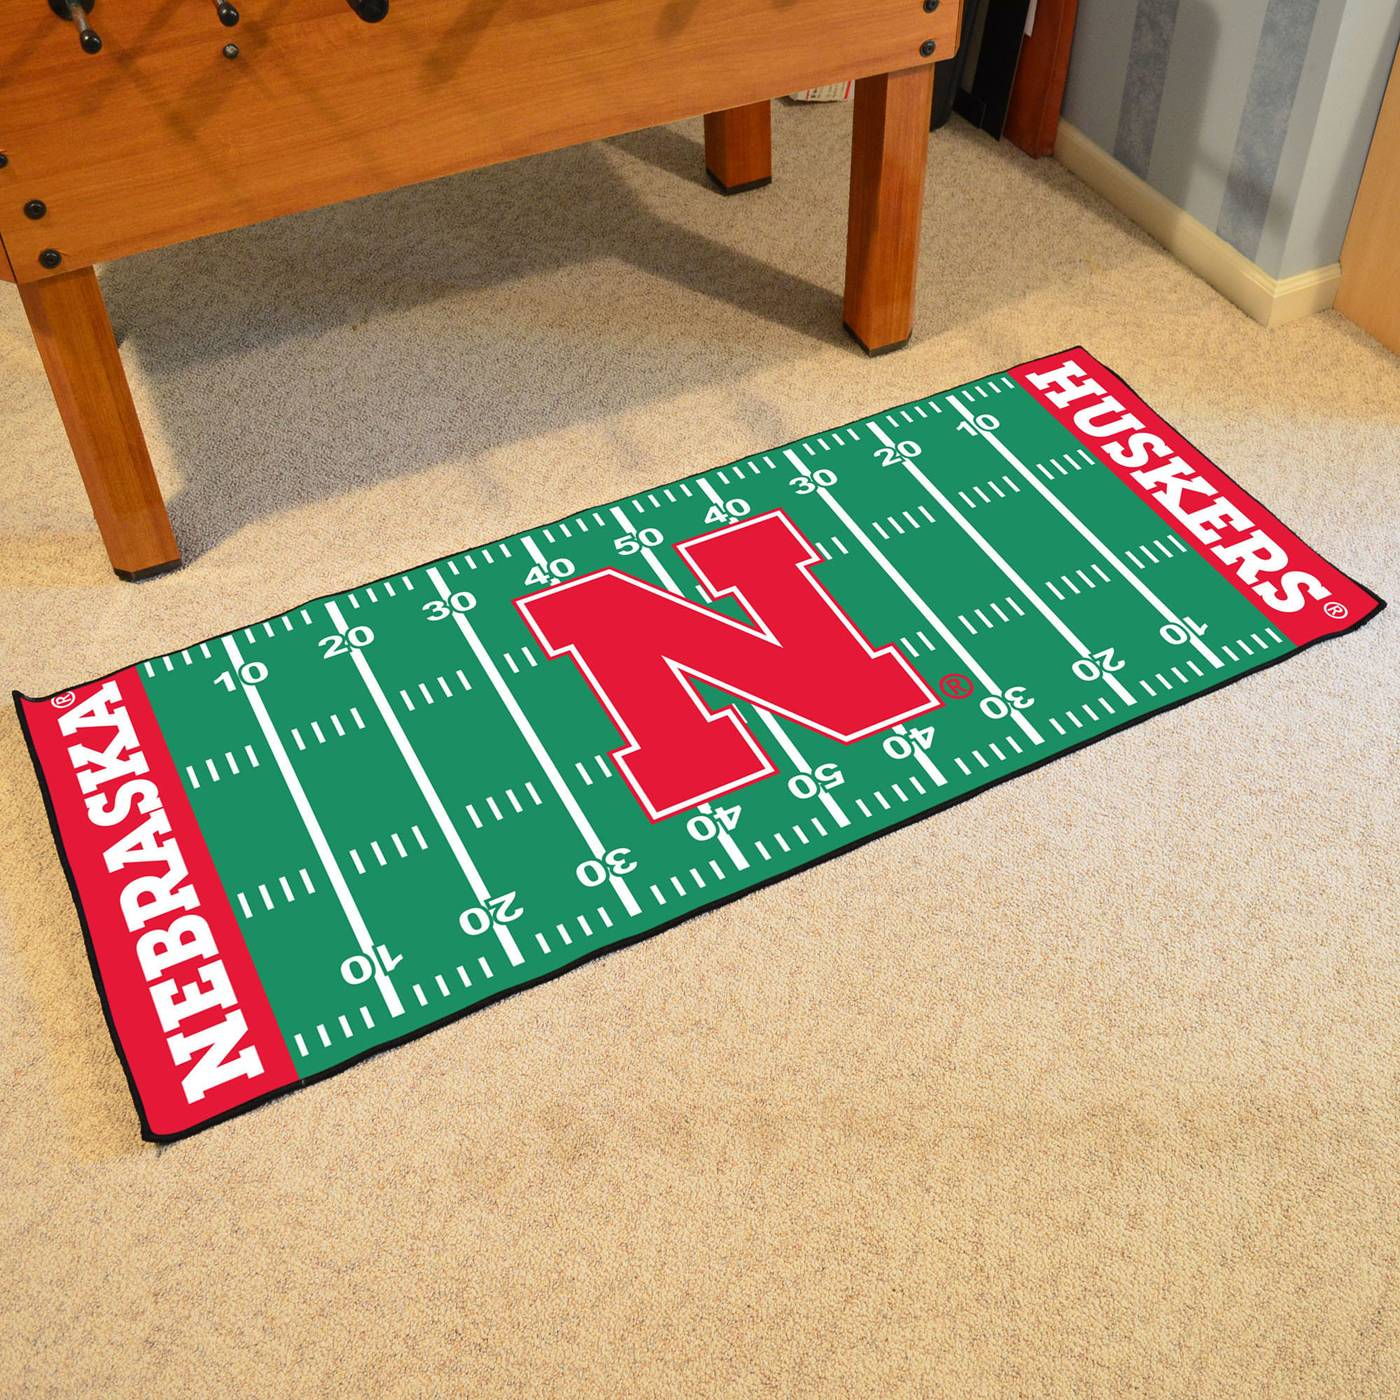 Nebraska Cornhuskers Blackshirts Football Field Runner Rug: Nebraska Cornhuskers Football Field Runner Rug